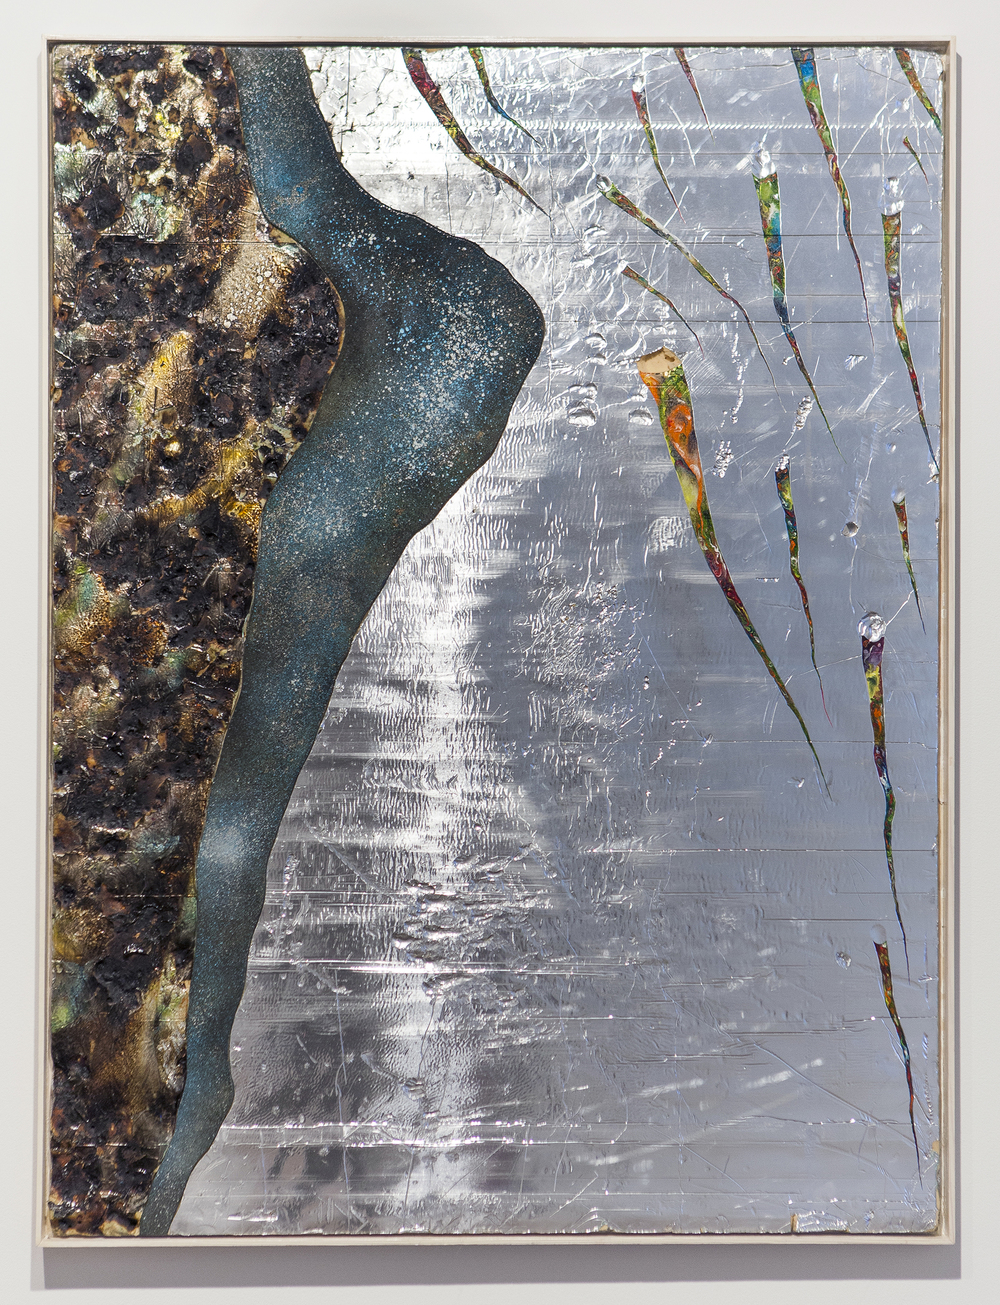 """Are you shivering? Are you cold? Are you bathed in silver or drowned in gold?"", 2014, oil paint, pigment, spray paint, burns, wood, steel on silver faced foam panel, 48x36 inches"